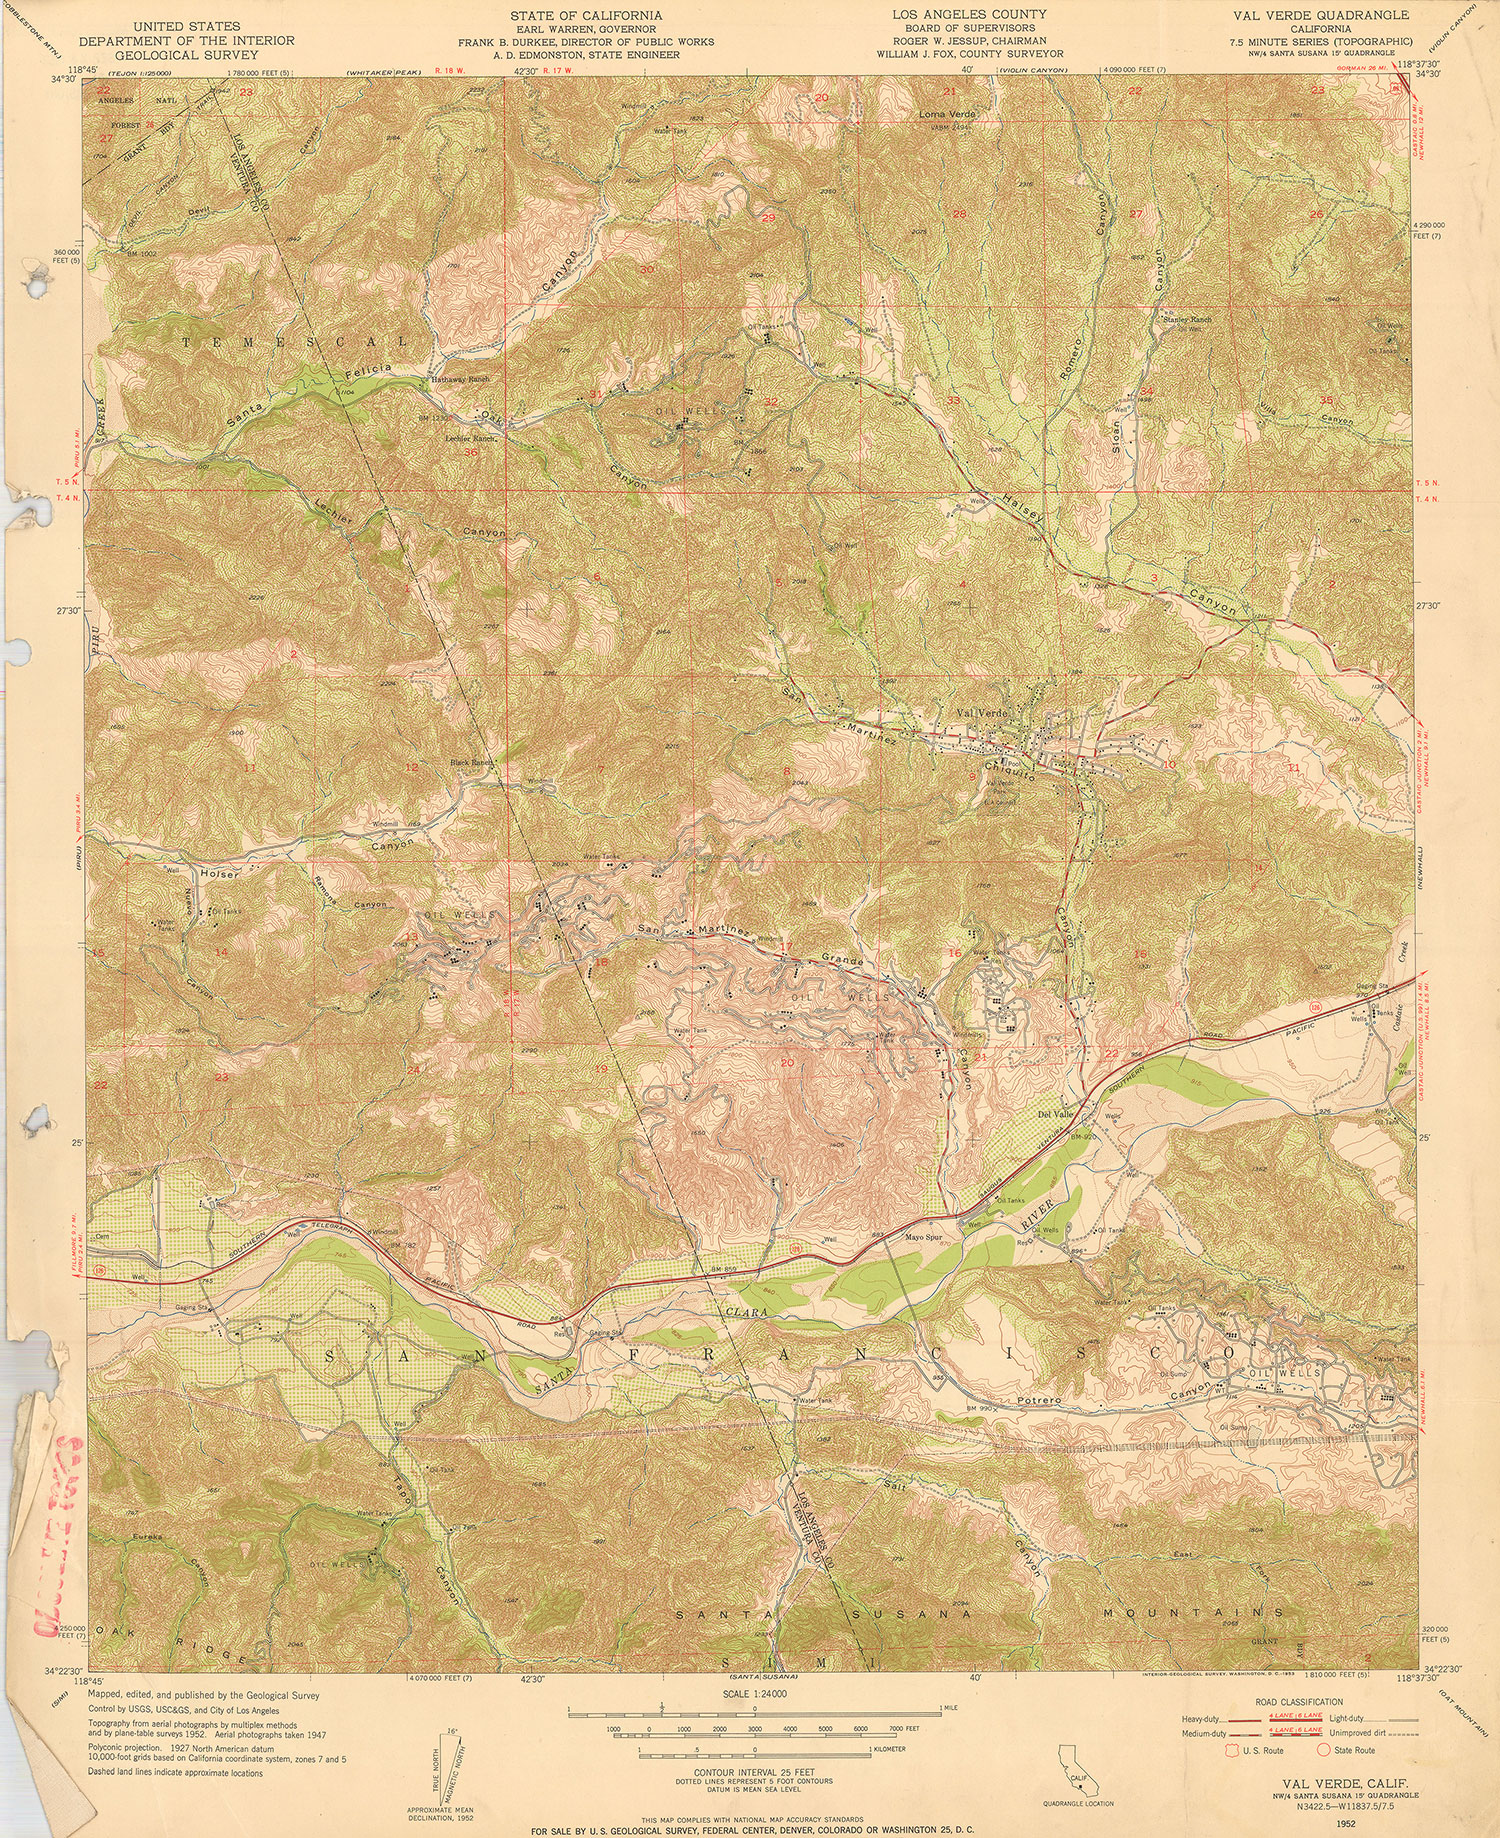 World And USA Maps For Sale Buy Maps Mapscom World And USA Maps - Los angeles california map united states